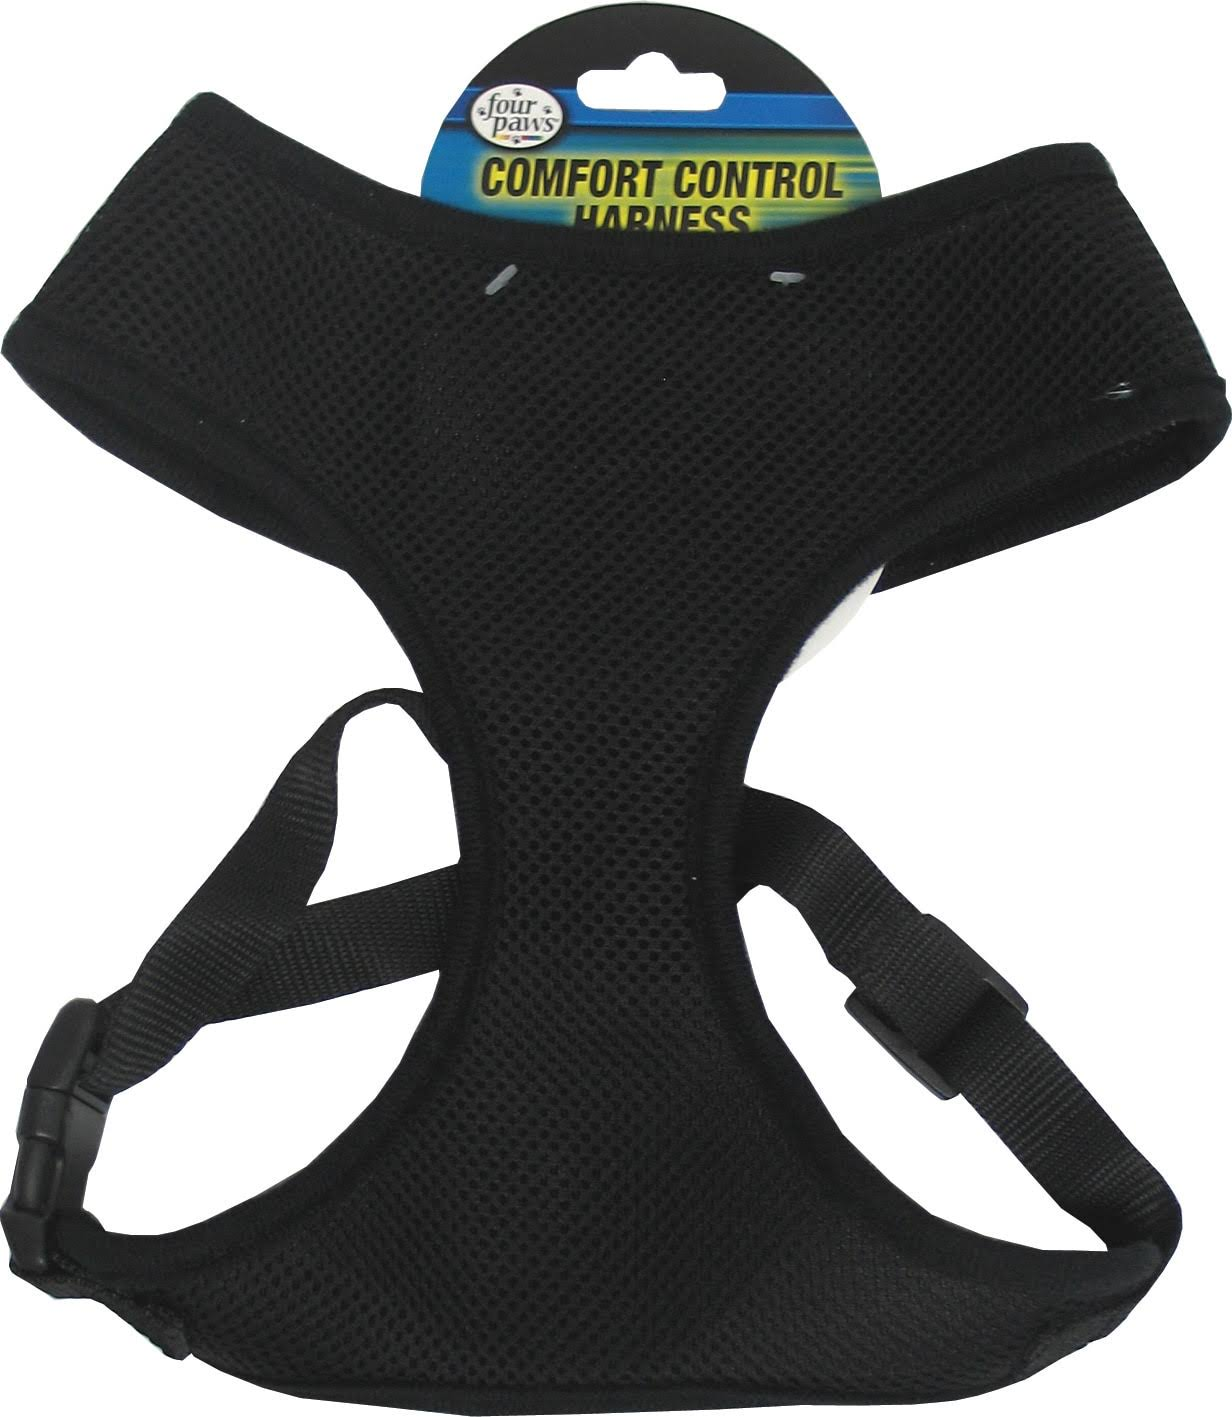 Four Paws Comfort Control Dog Harness - Black, Extra Small